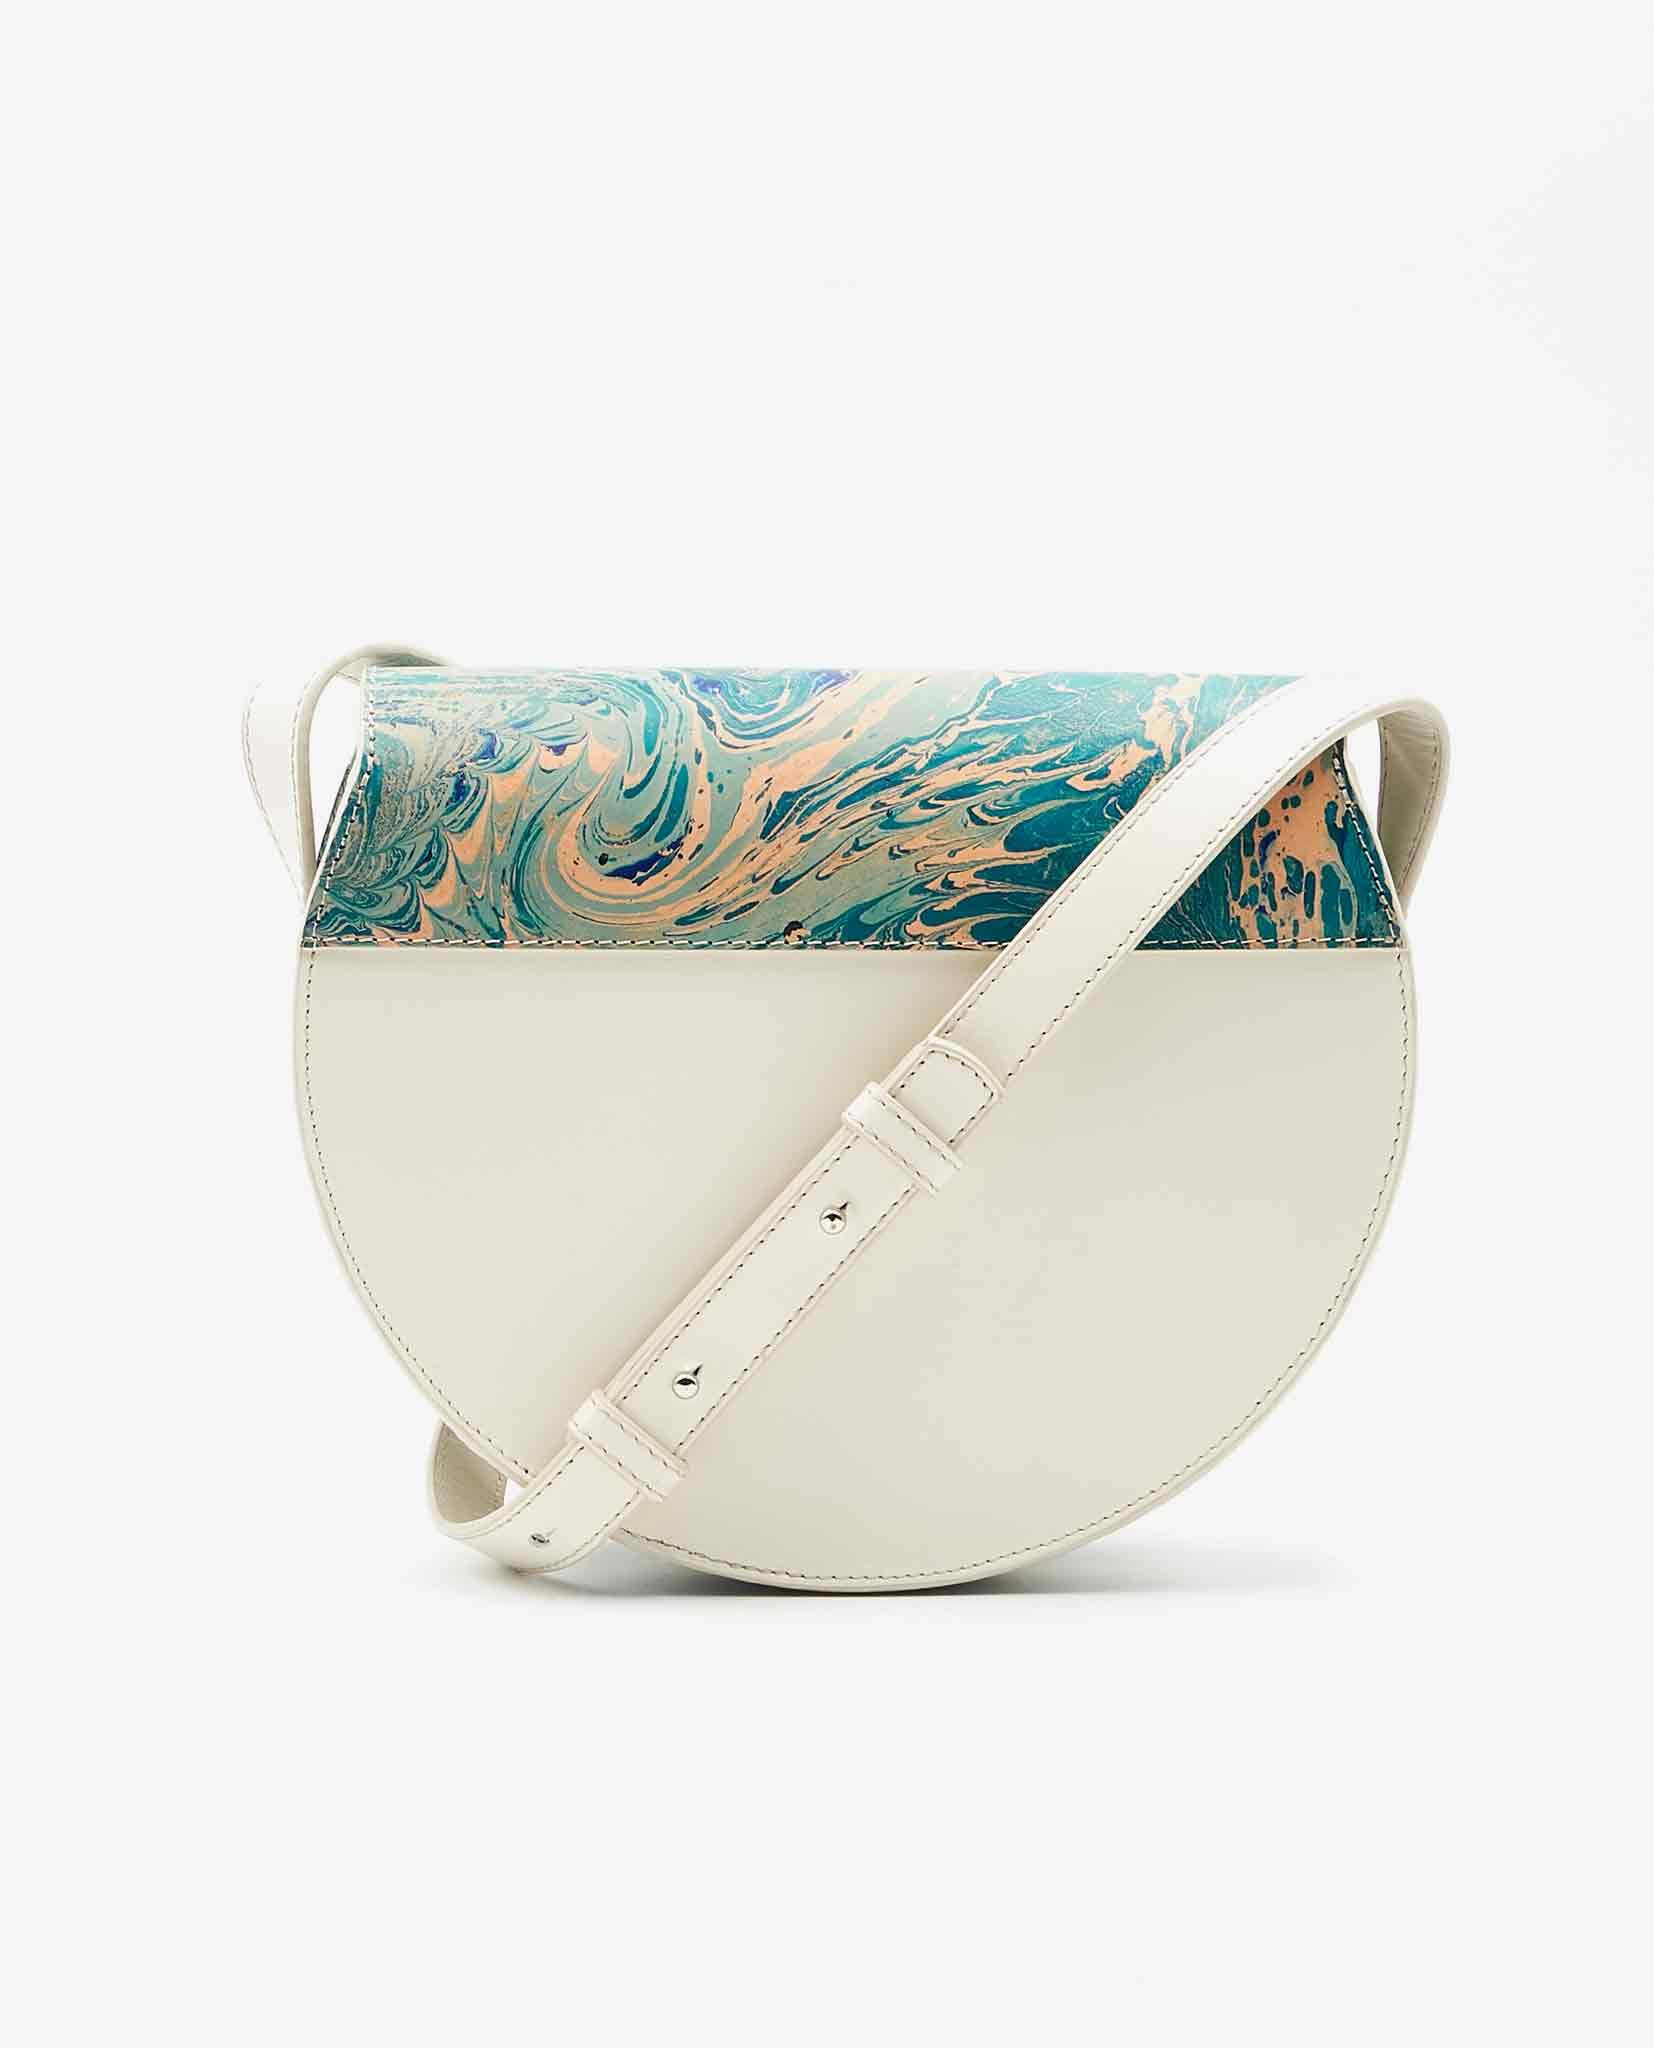 SOOFRE-Berlin-unique-Crossbody-Purse-marble-turquoise-ivory-BACK